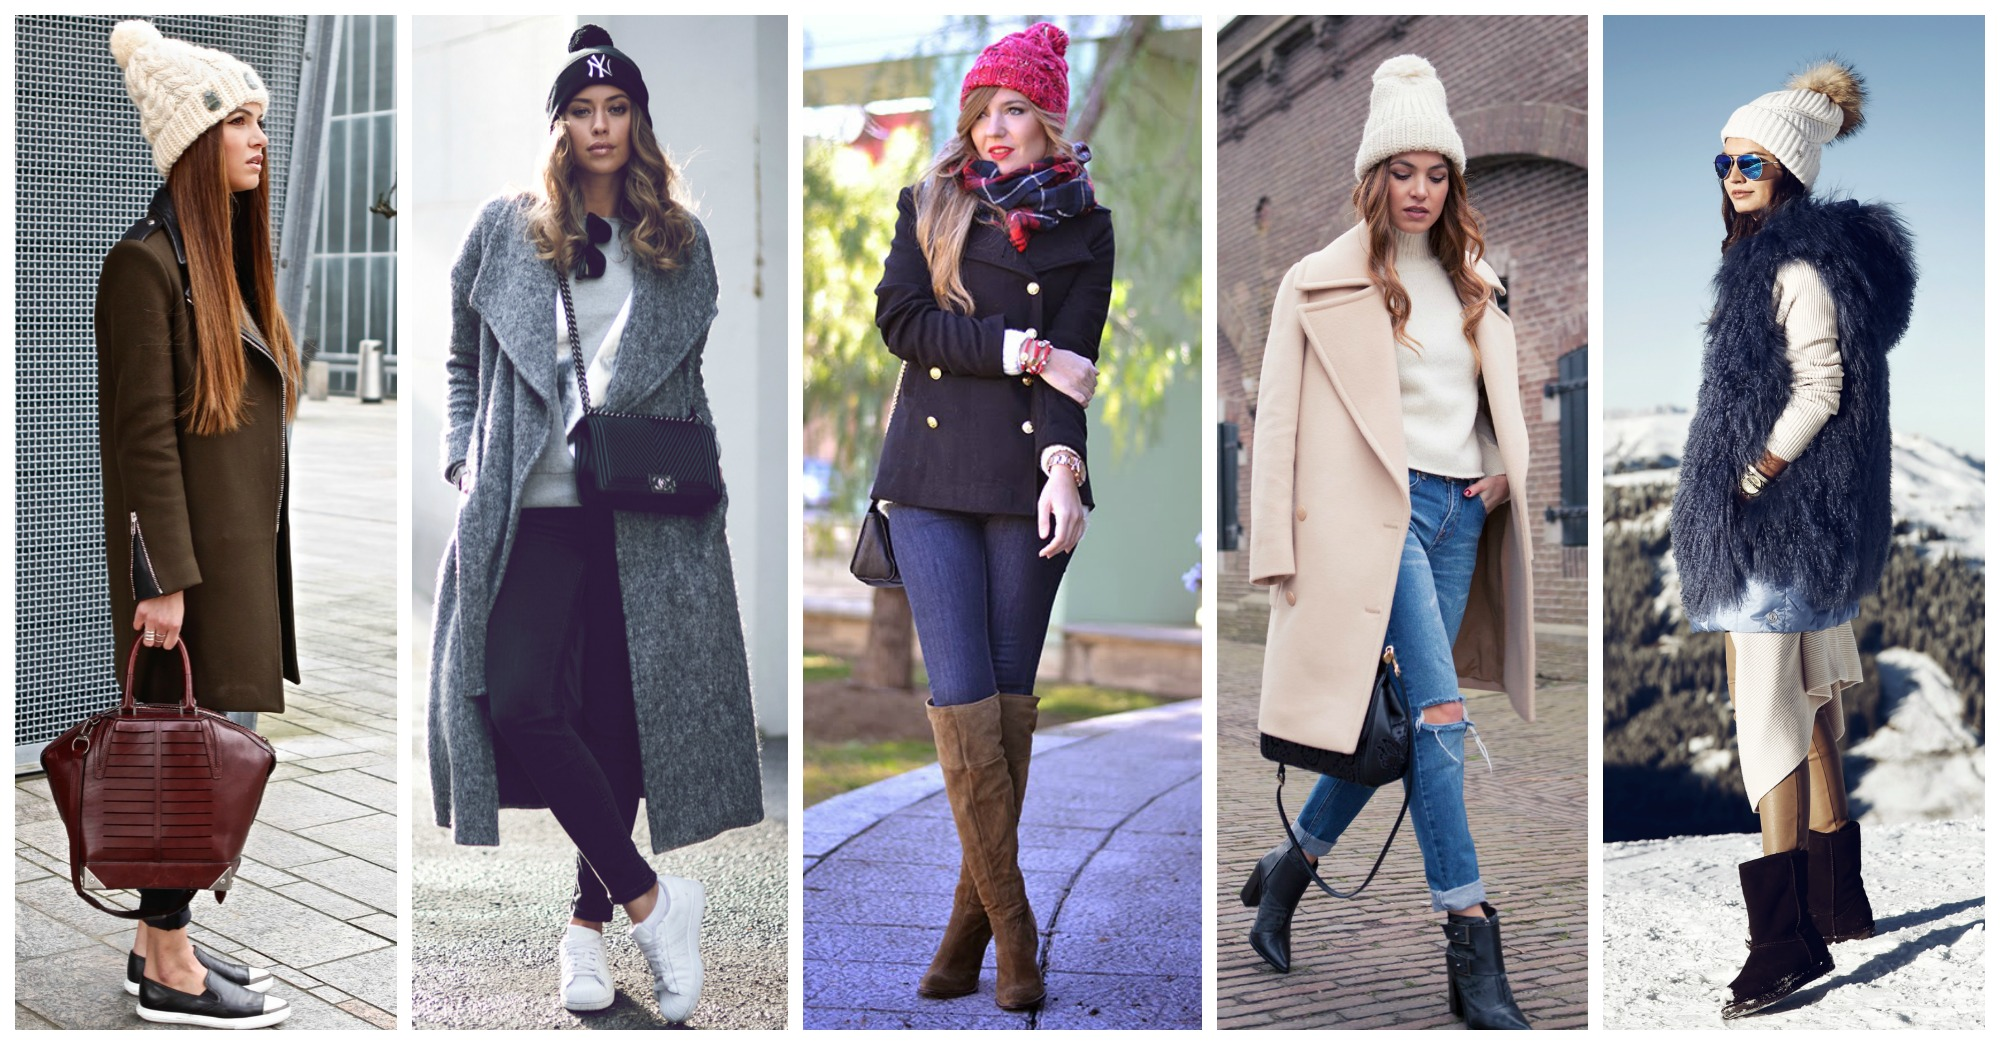 15 Lovely Outfits with Pom-Pom Beanies